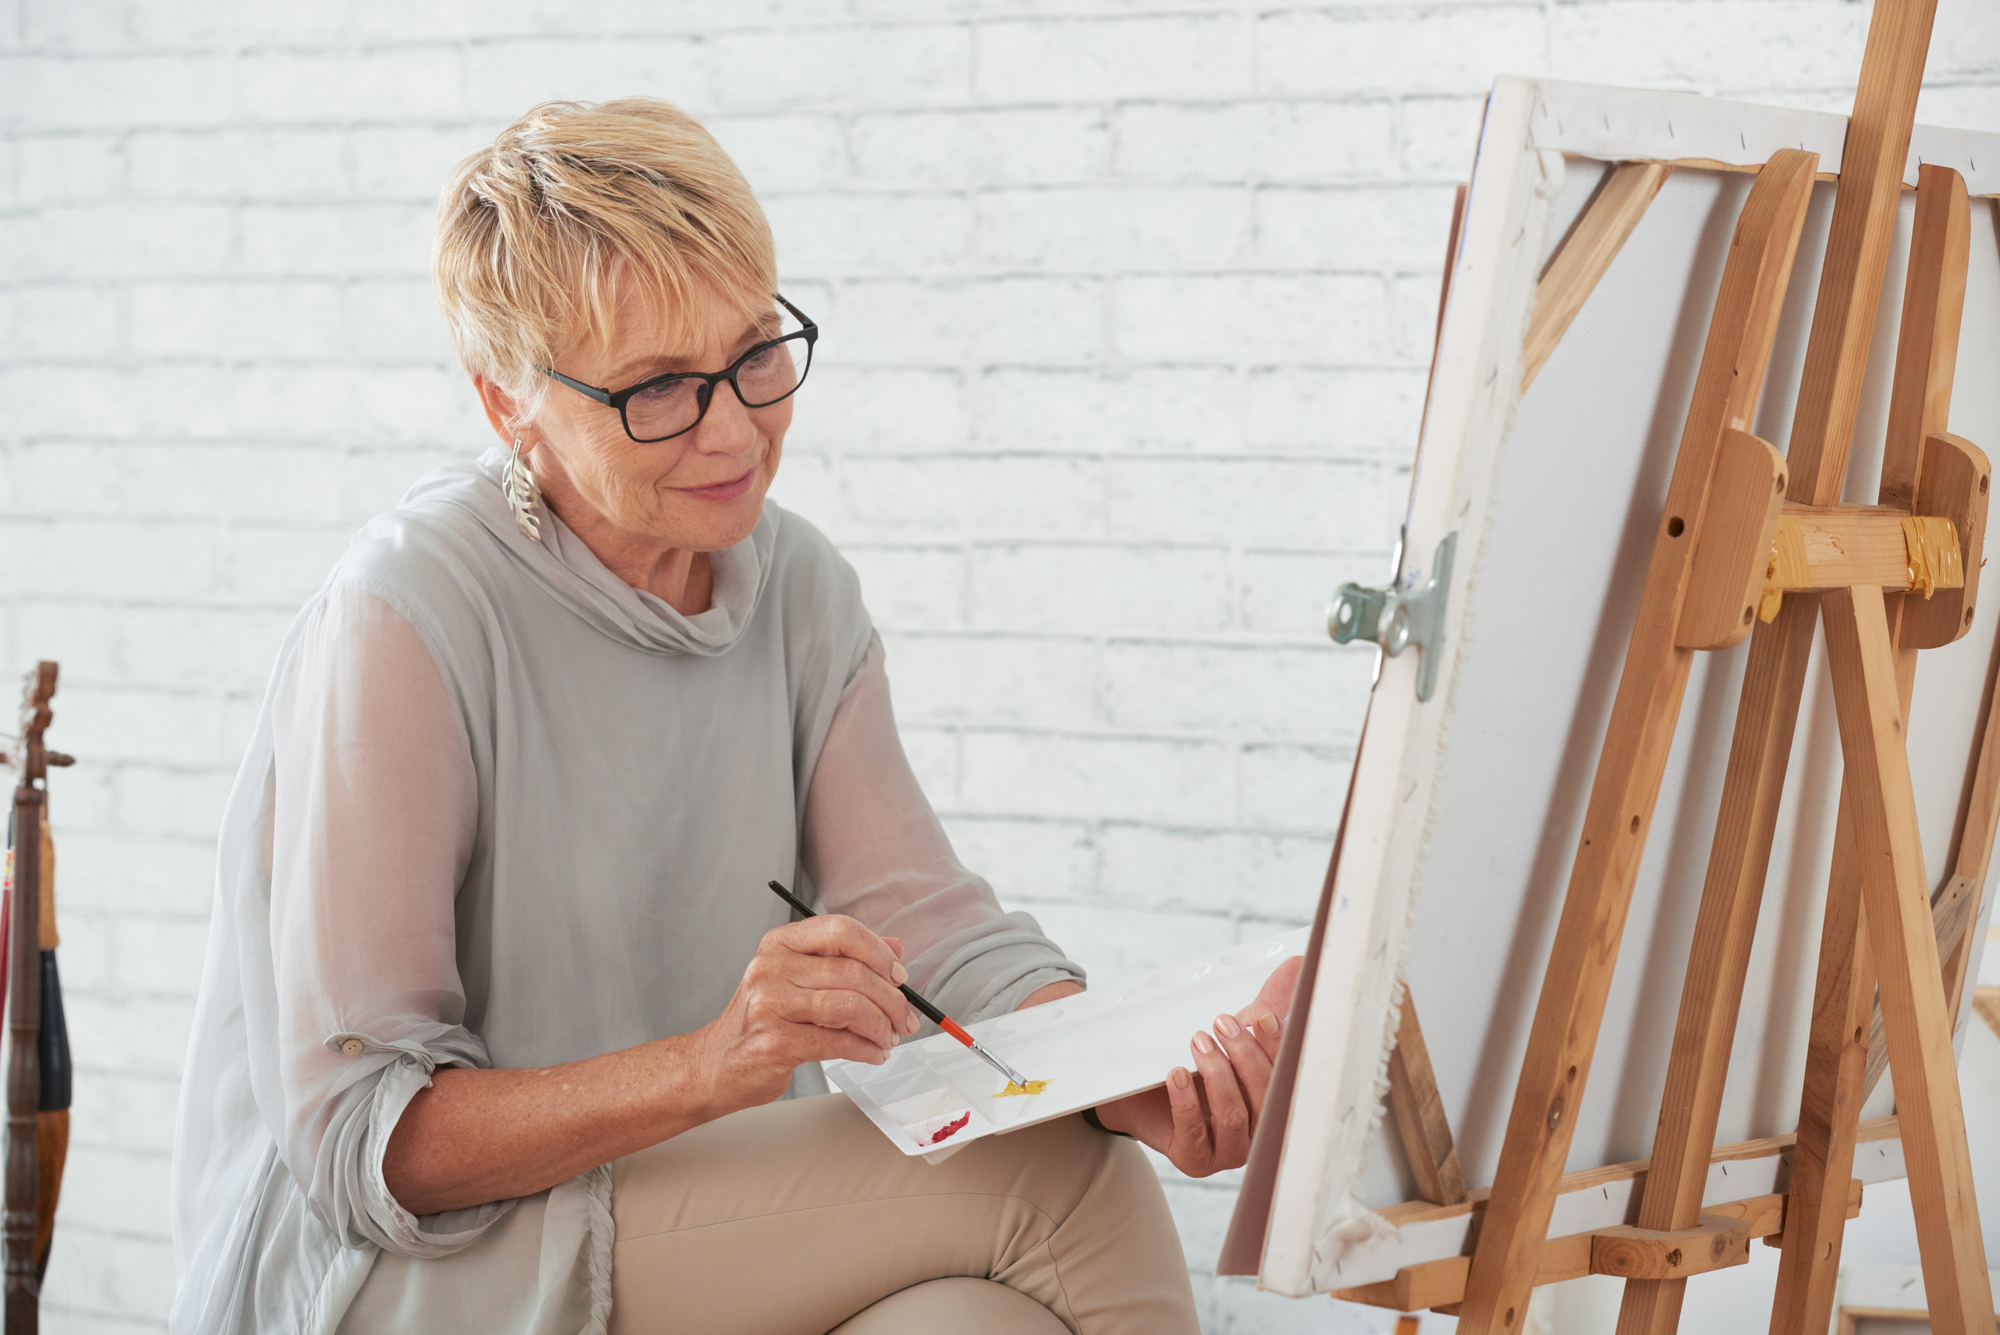 Senior woman painting at an easel. Art therapy offers significant benefits to both psychological and physical well-being.